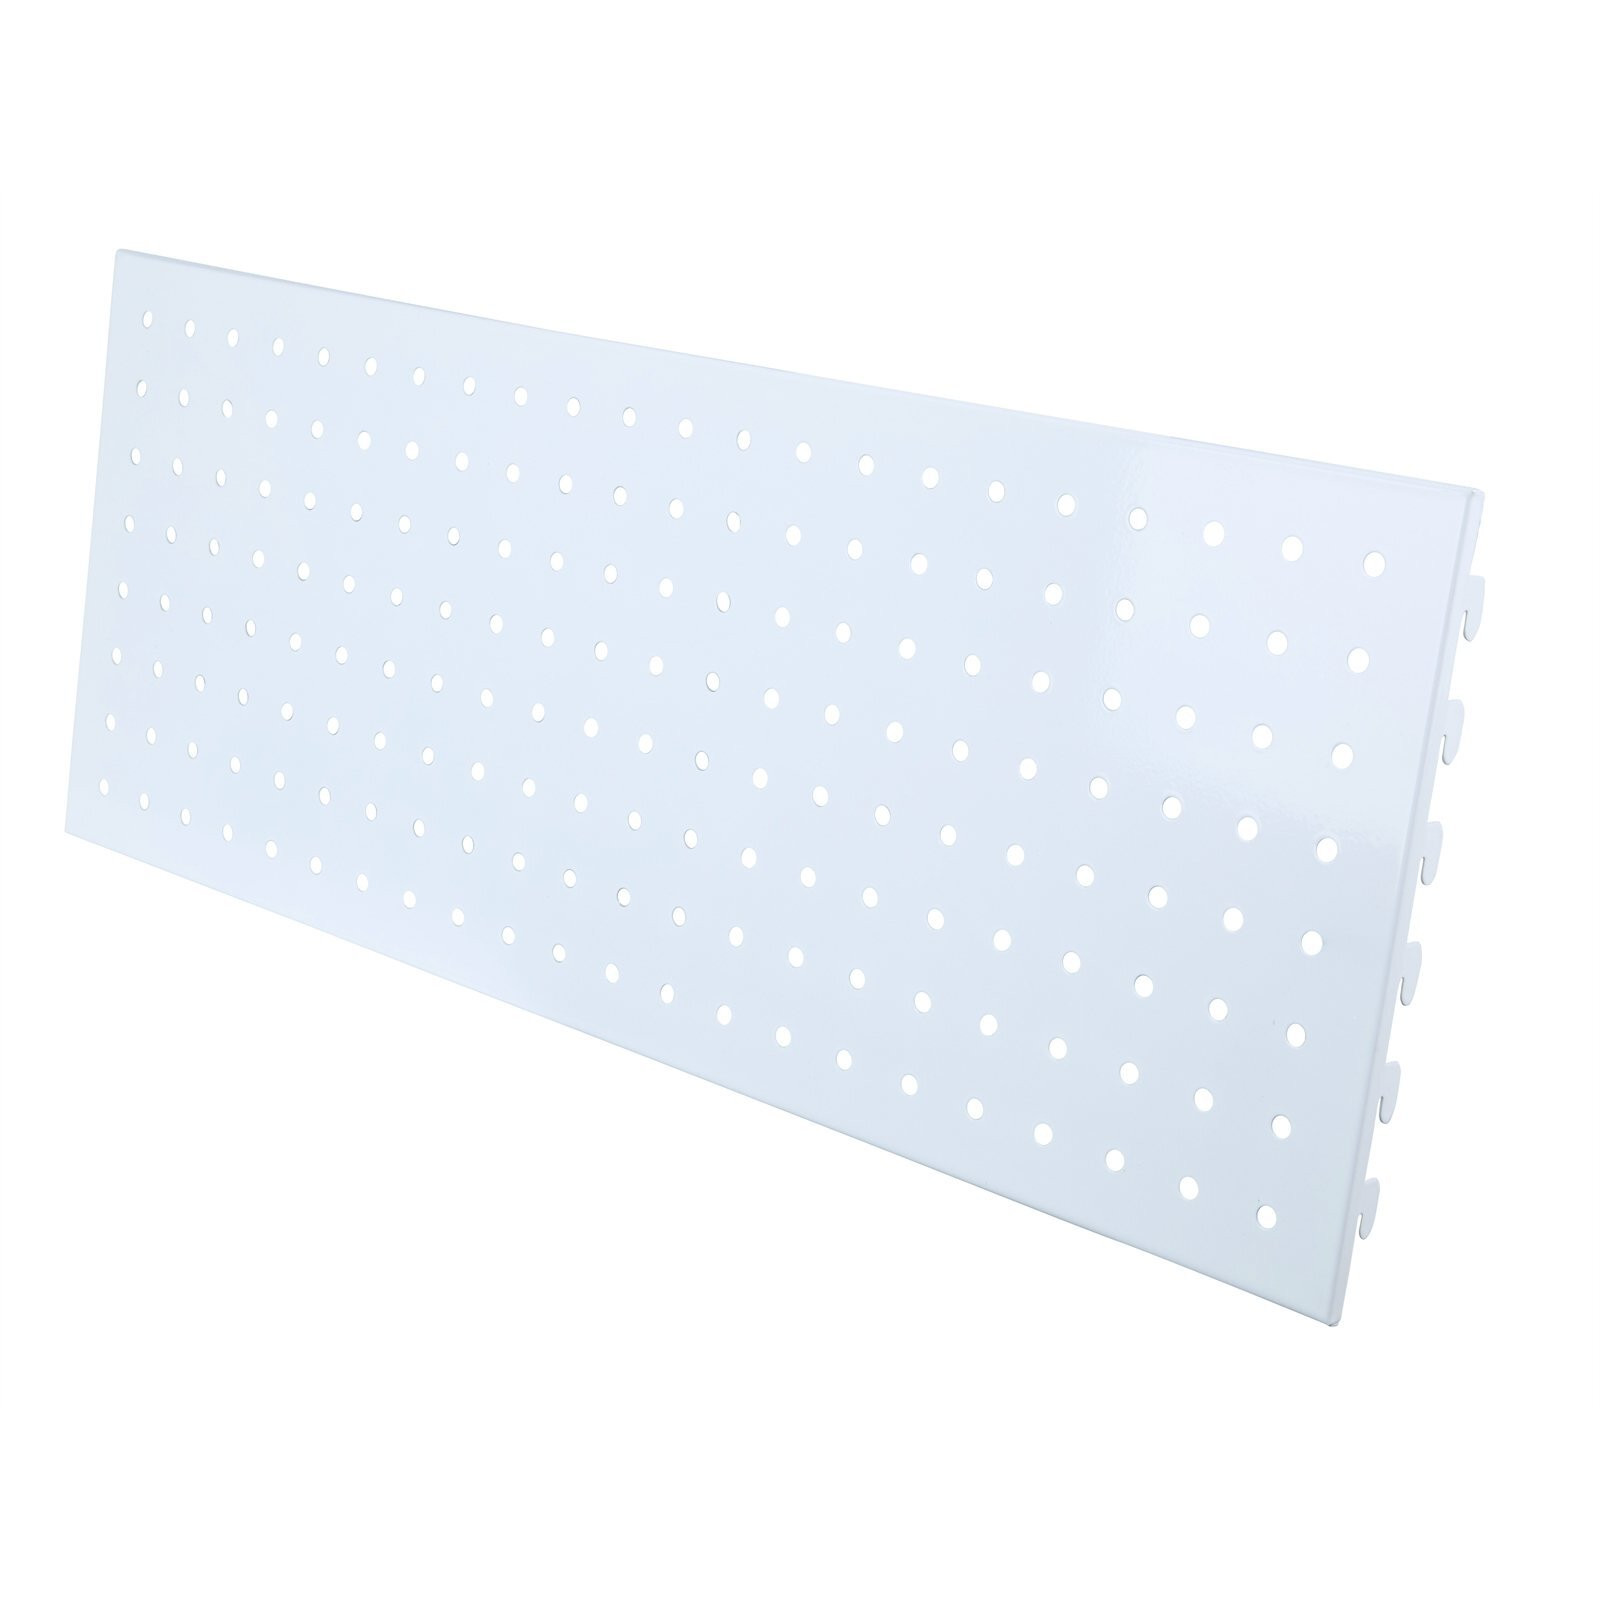 Flexi Storage 572 x 200mm Pegboard Backing Plate